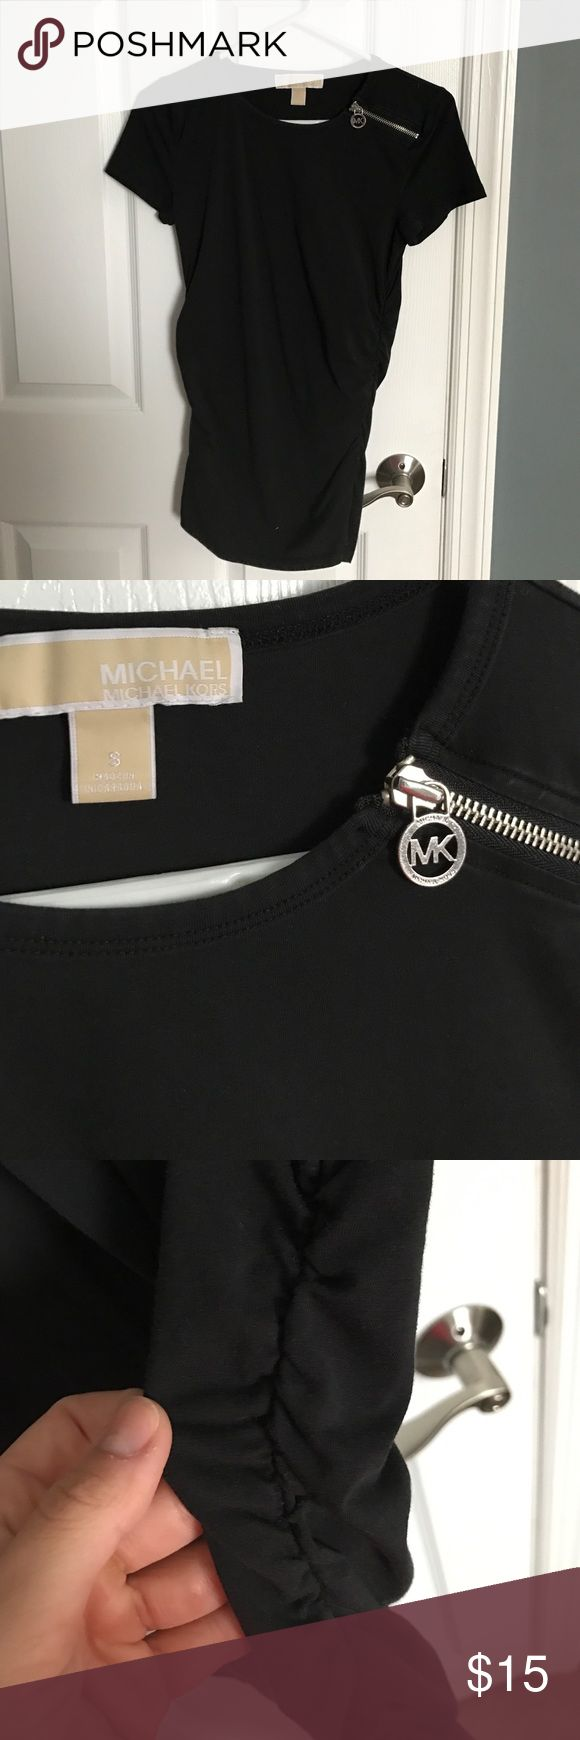 Michael Michael kors black tshirt Black shirt with shirring on the sides. Zipper detail on top. Size small. Fitted top, on the longer side. MICHAEL Michael Kors Tops Tees - Short Sleeve